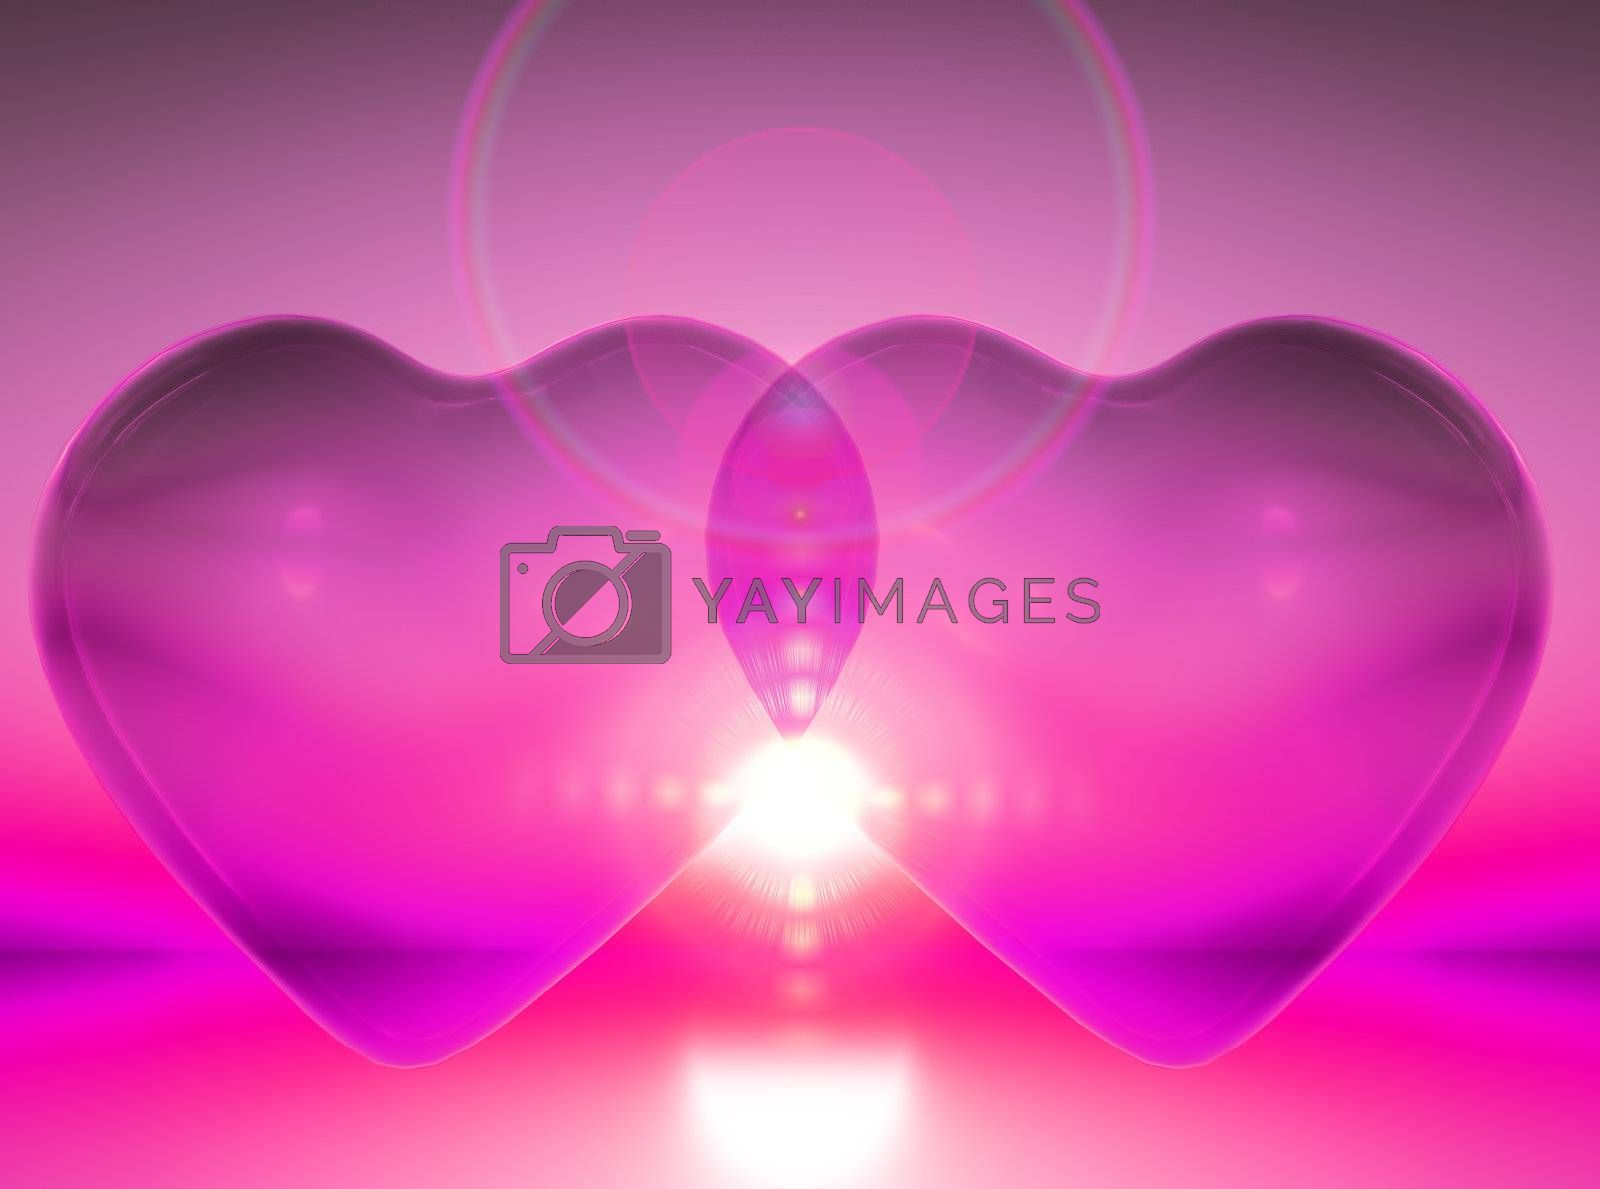 union of two hearts in pink colors